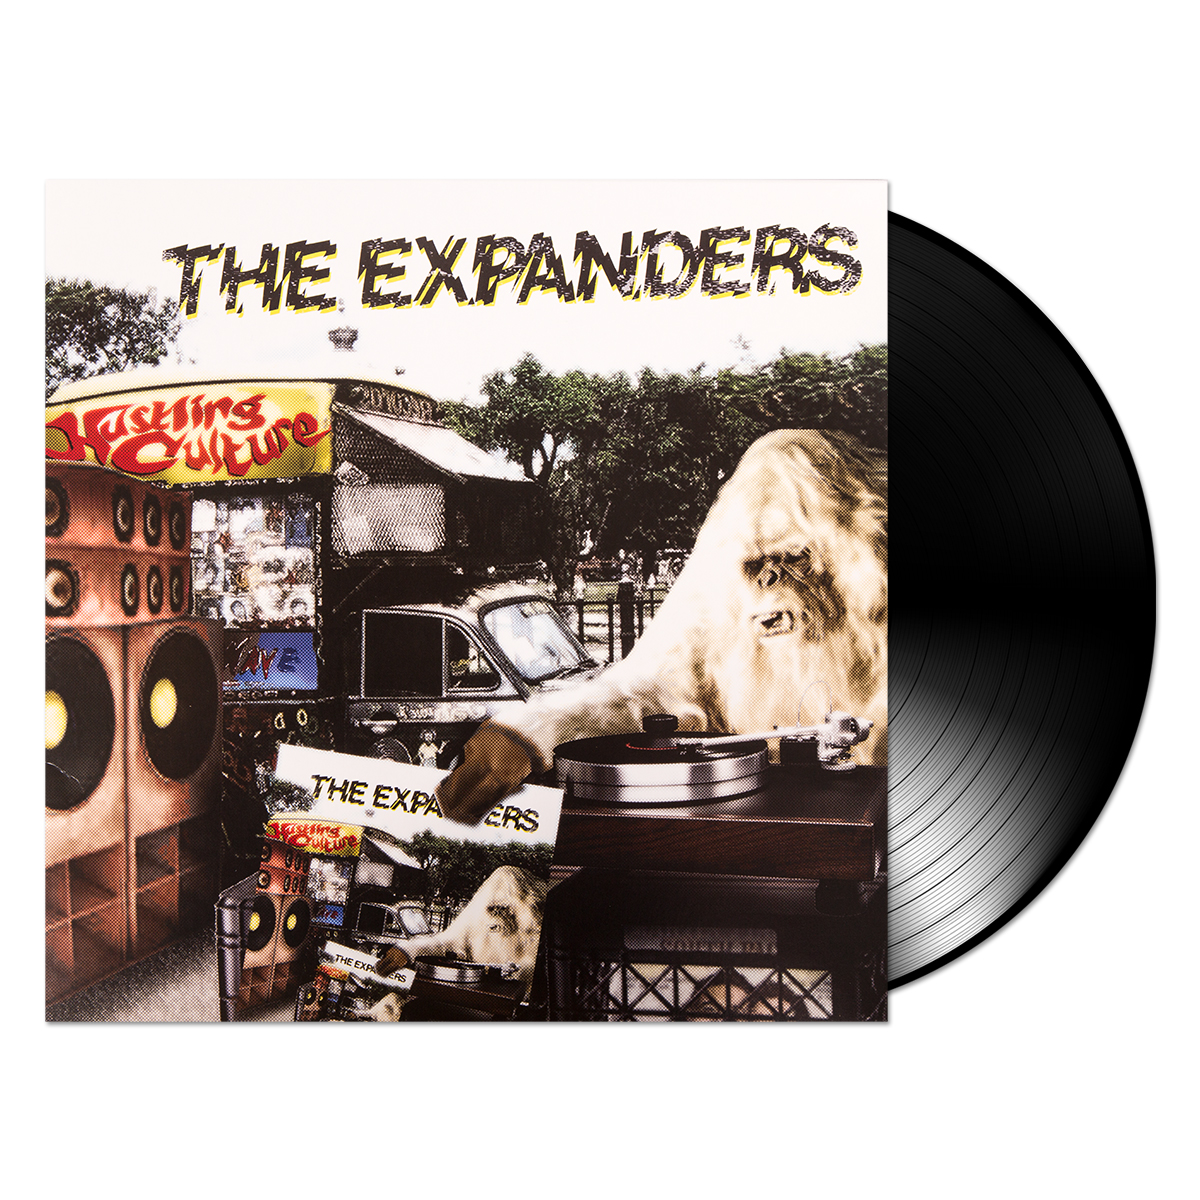 The Expanders Hustling Culture LP